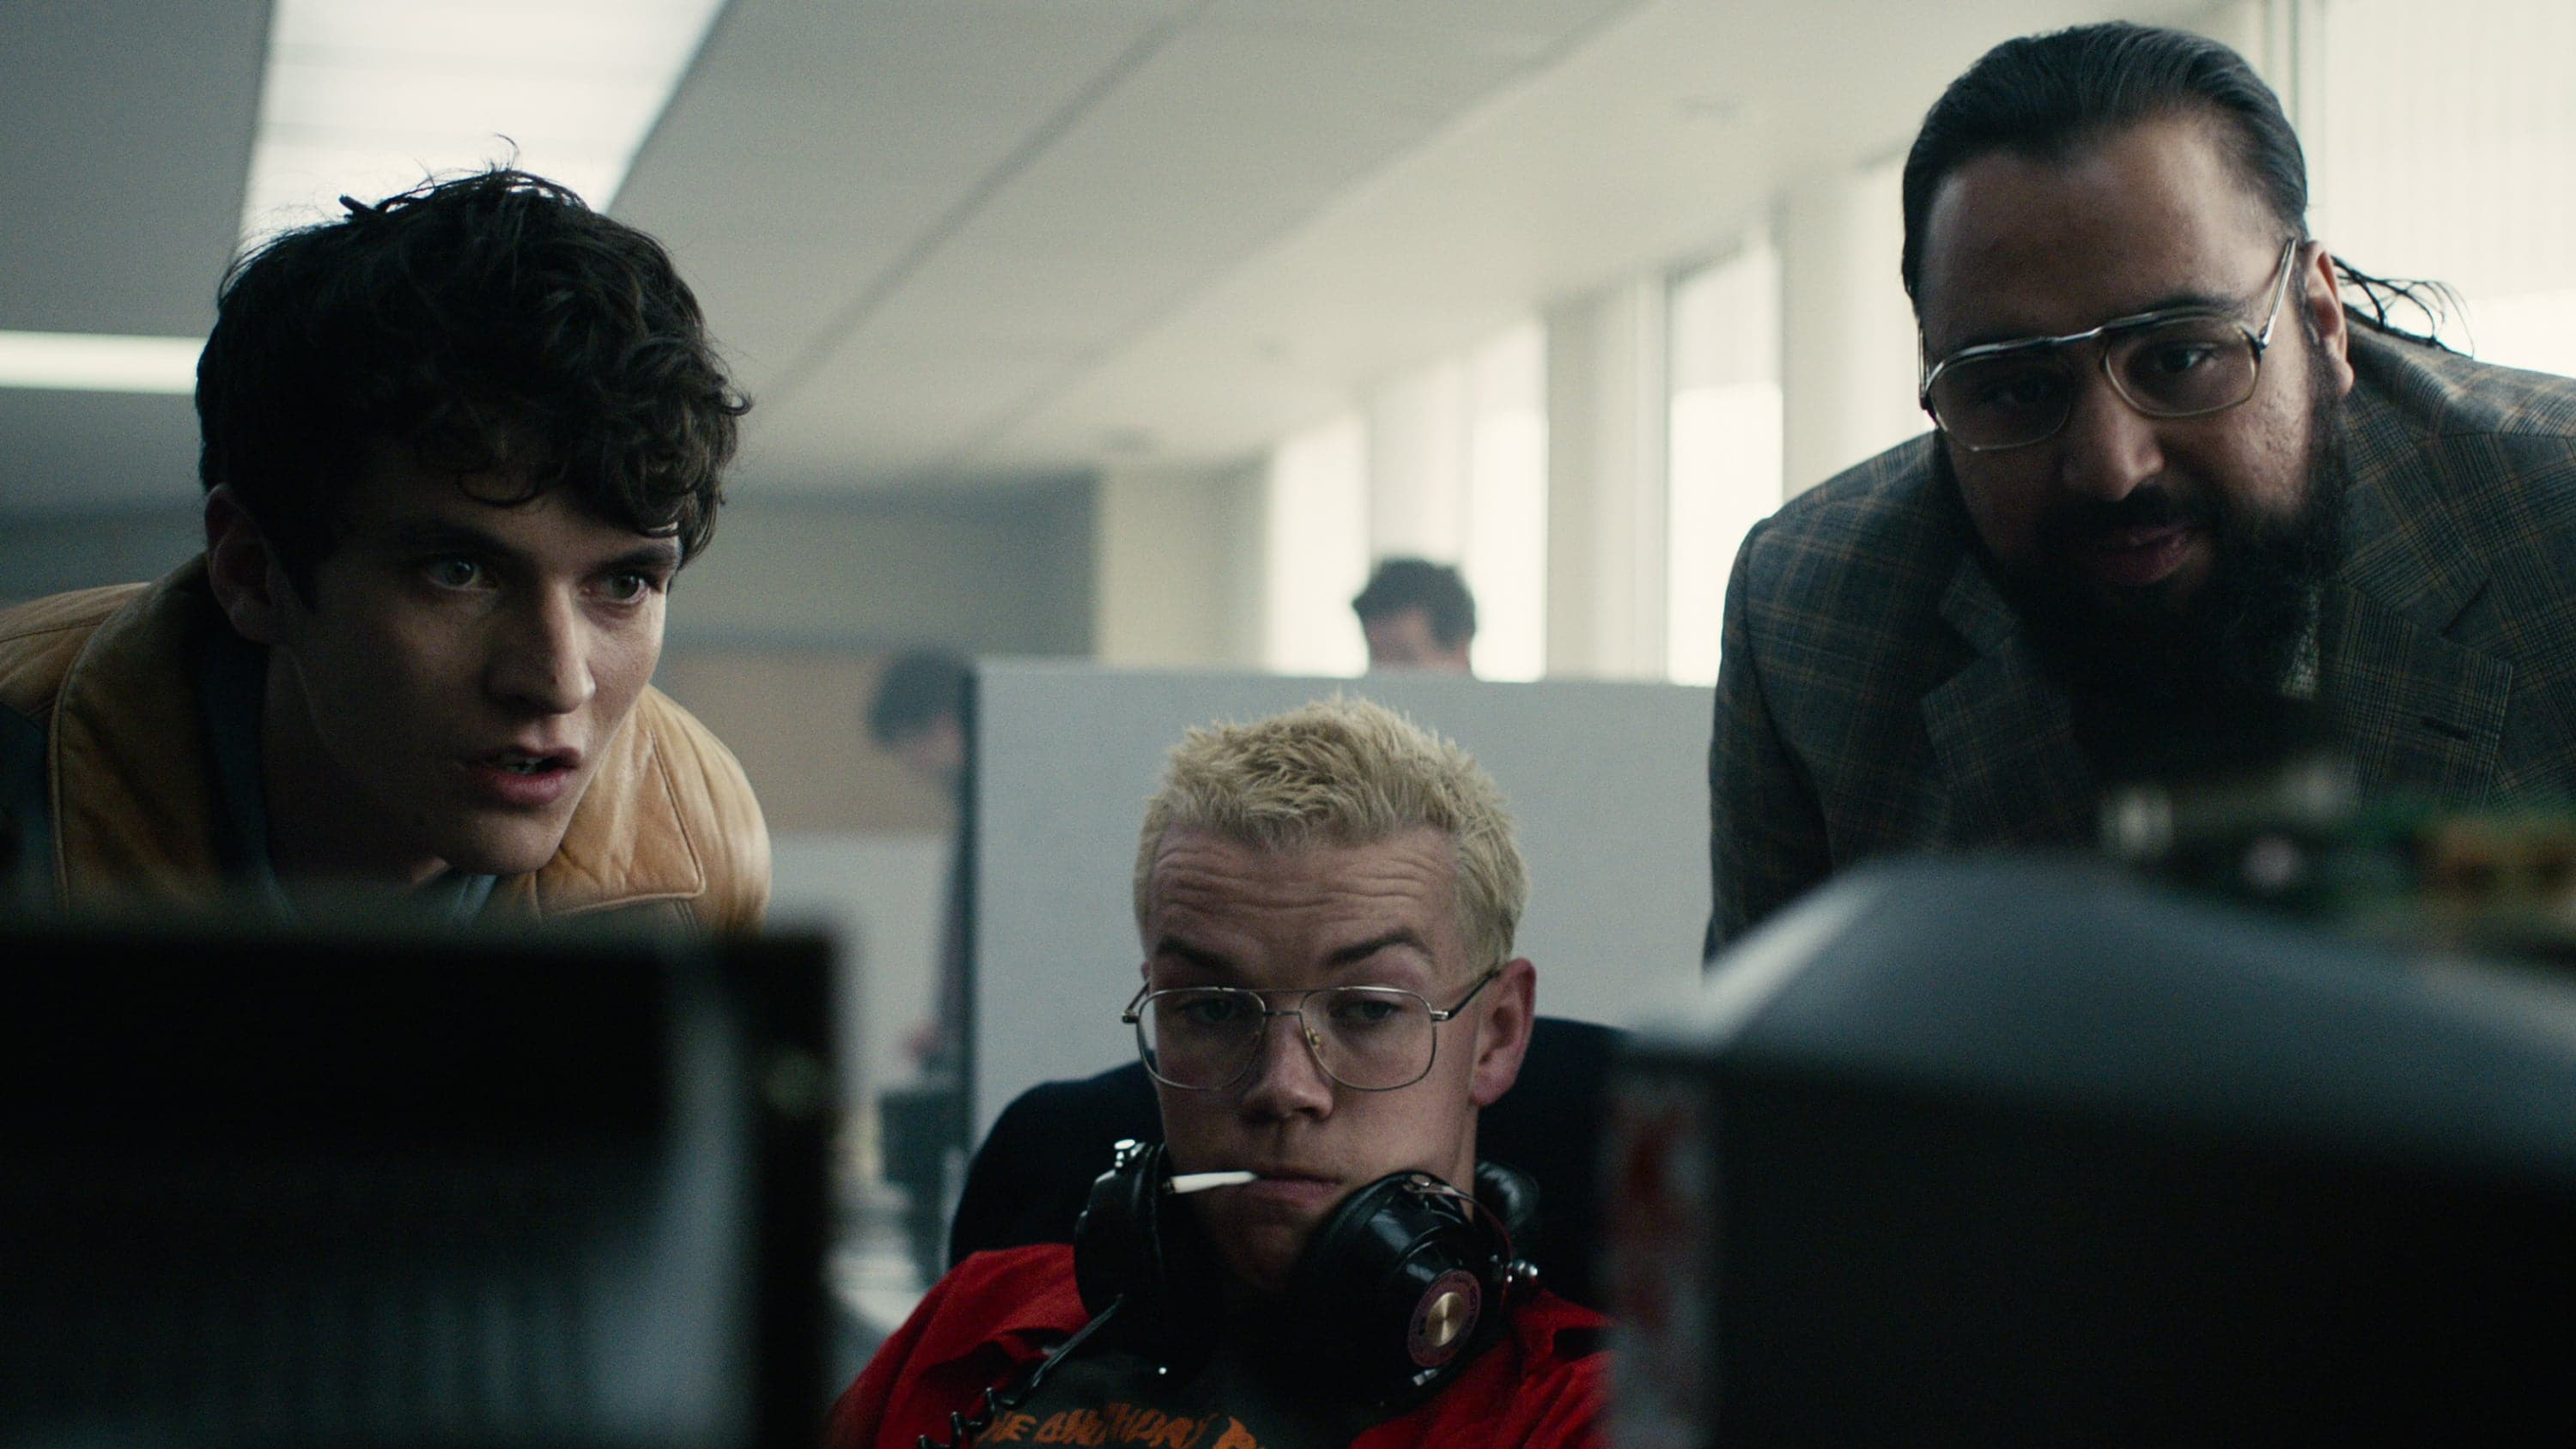 Regarder Black Mirror: Bandersnatch en streaming gratuit